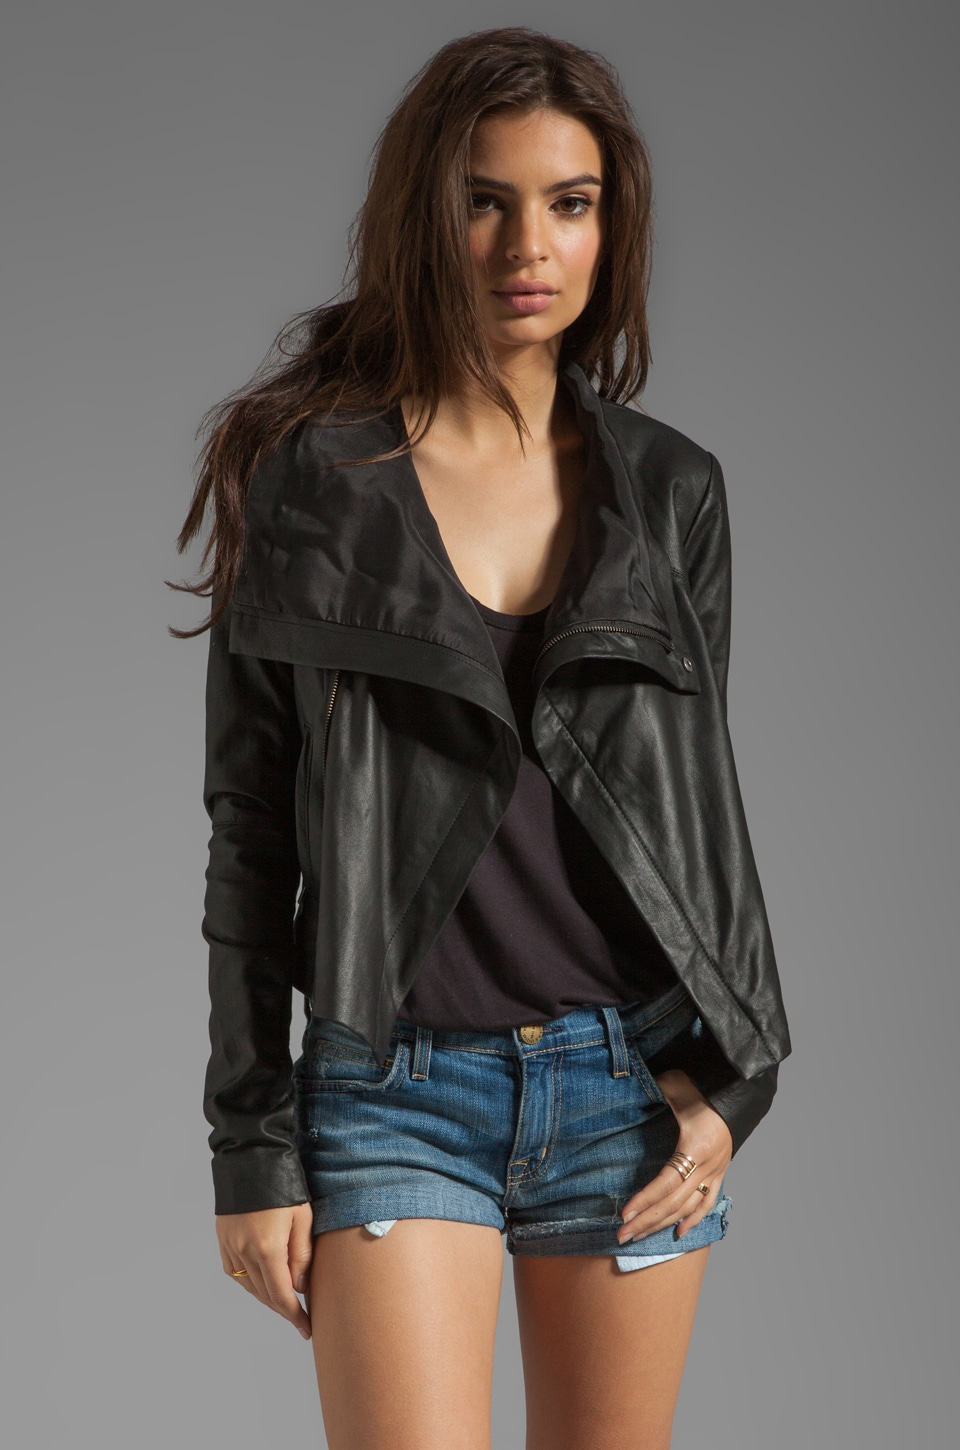 VEDA Max Summer Jacket in Black